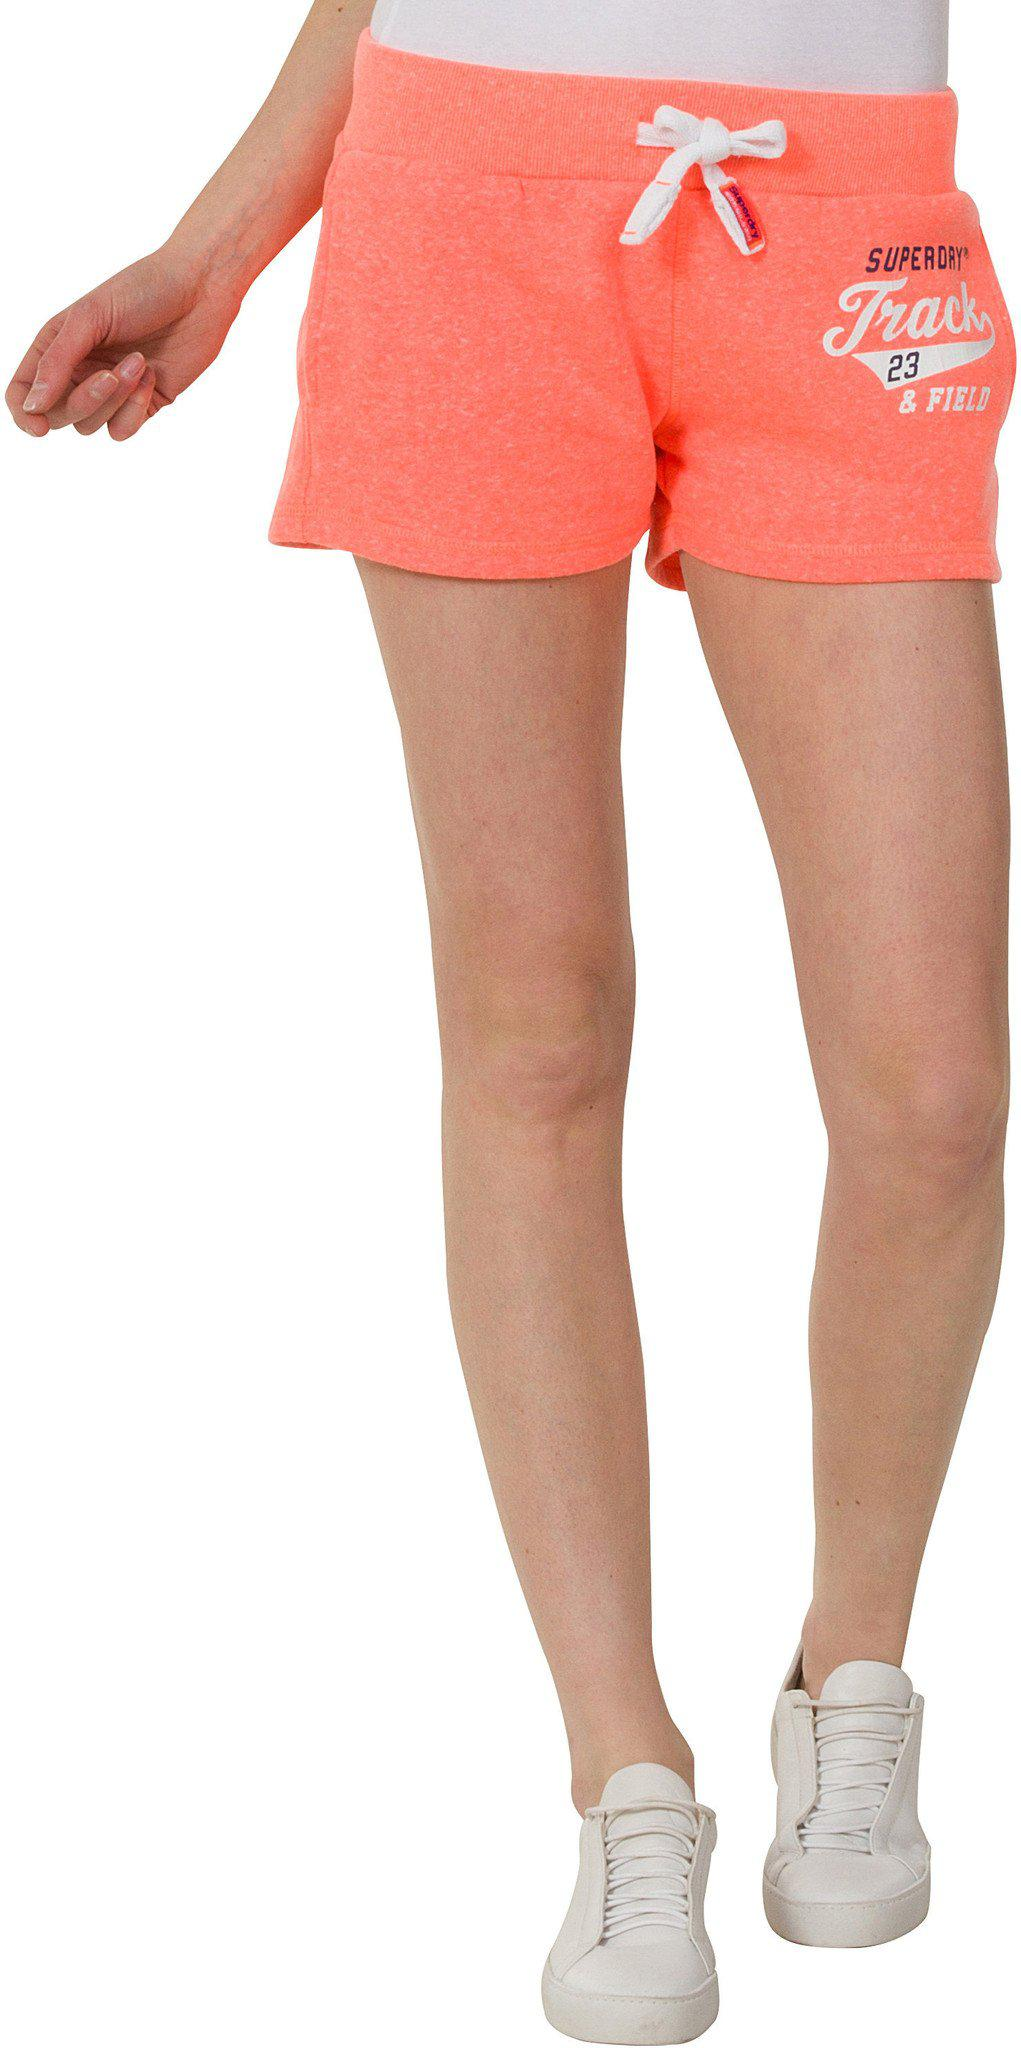 ad4c54c4b0603c Superdry Women's Track & Field Shorts - Lyst